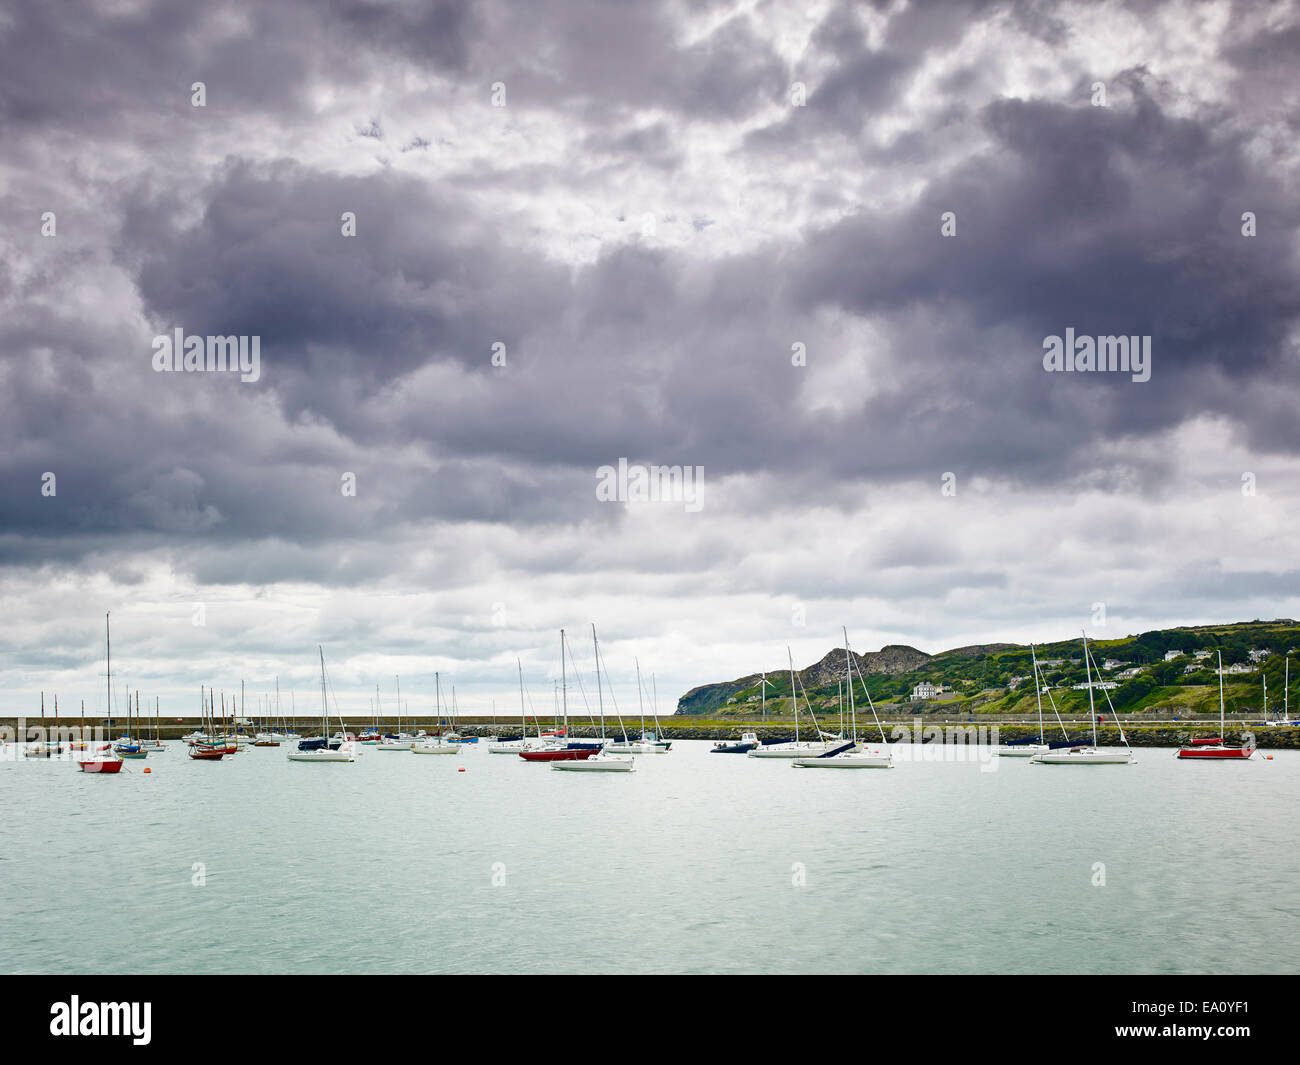 Large group of boats anchored in harbor, Howth, Dublin Bay, Republic of Ireland Stock Photo